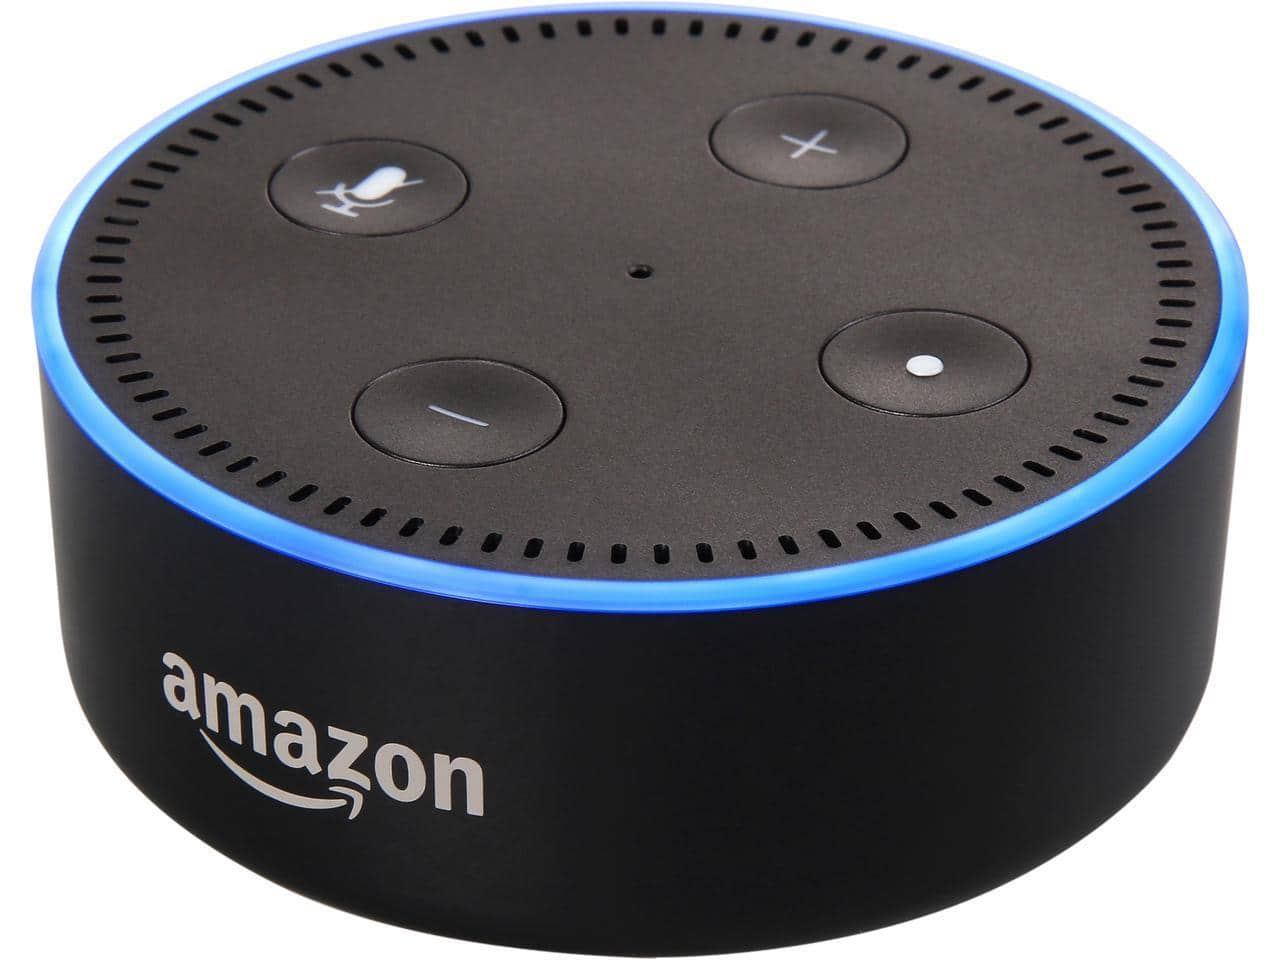 Echo dot 2nd Gen and $10 Newegg Card for $39.99 at Newegg